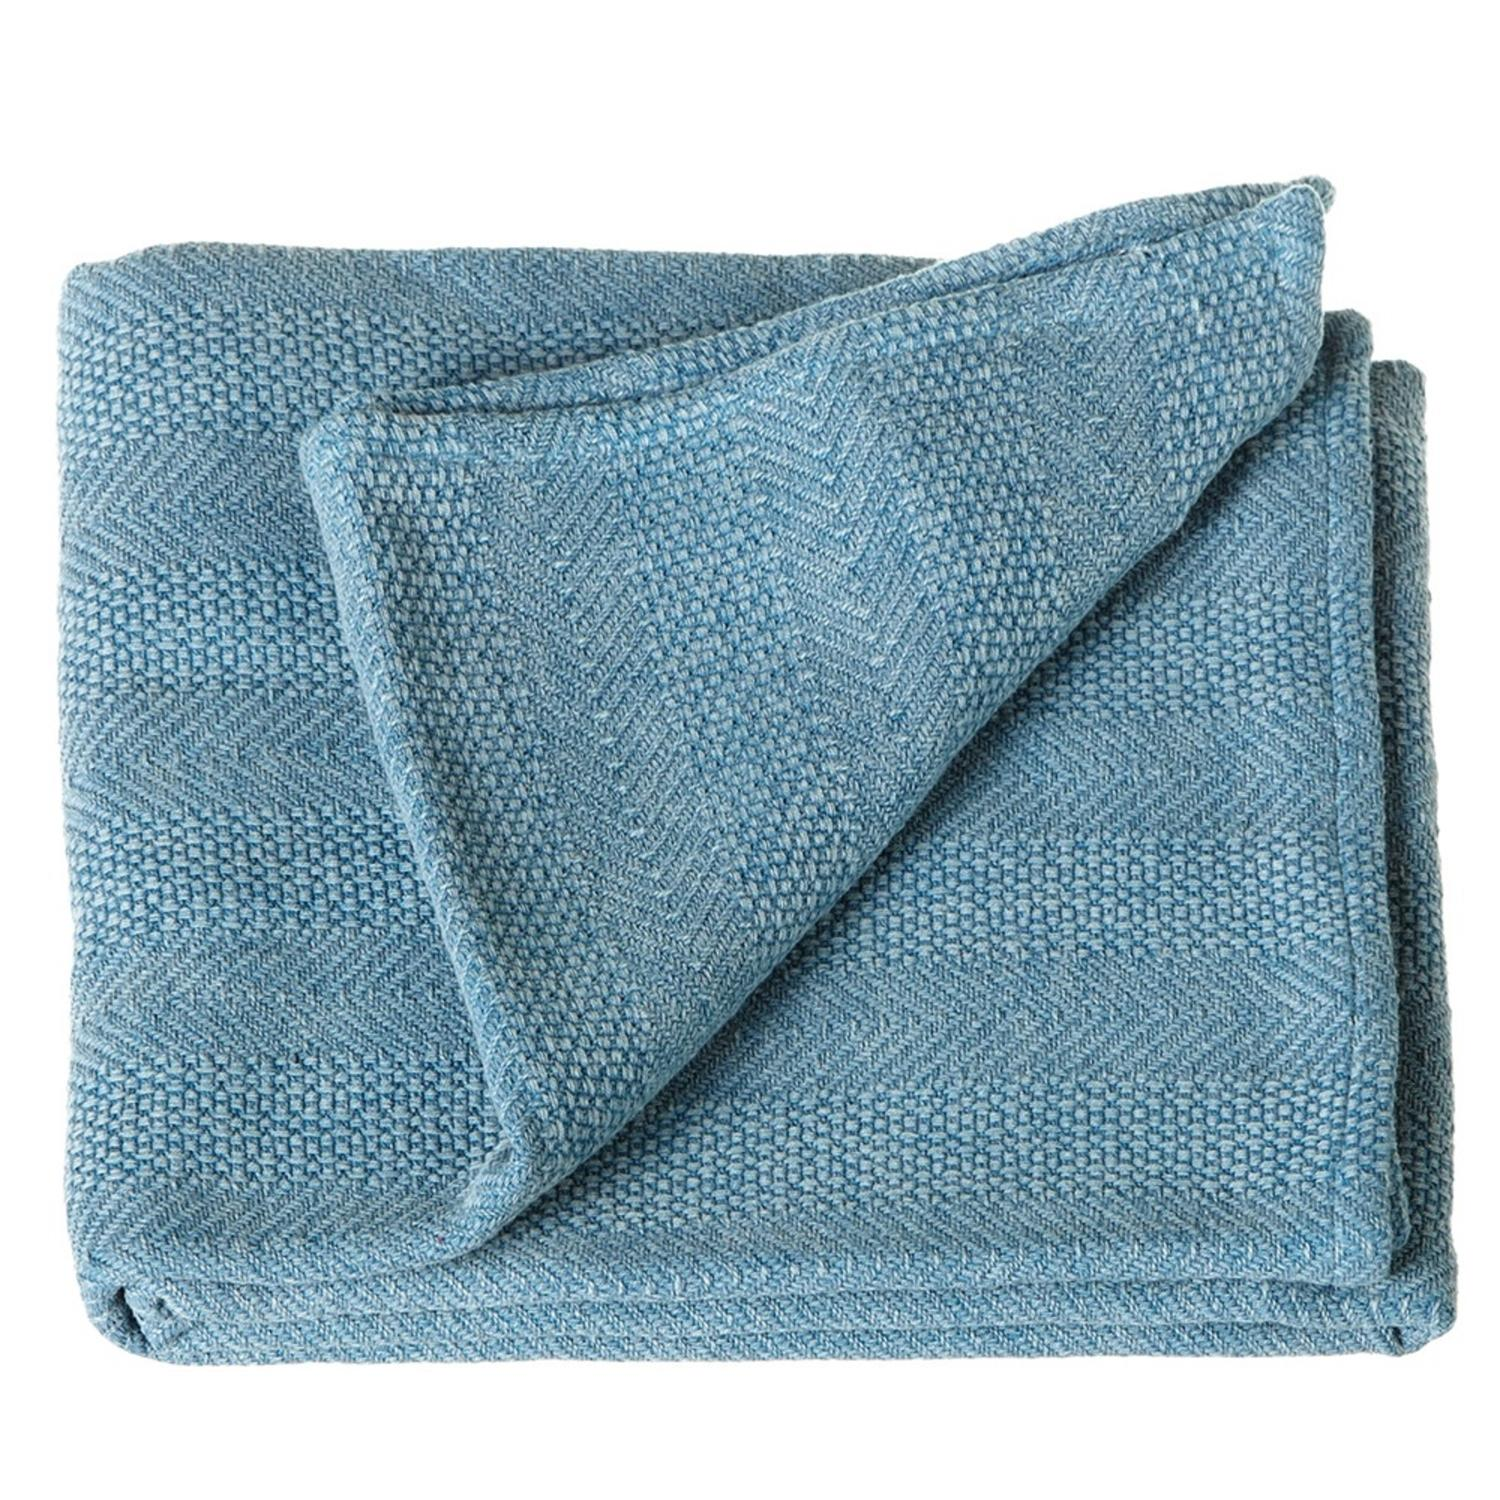 "Set of 2 Sky Blue Arrow Striped Antique Wash Throw Blanket 50"" X 60"""